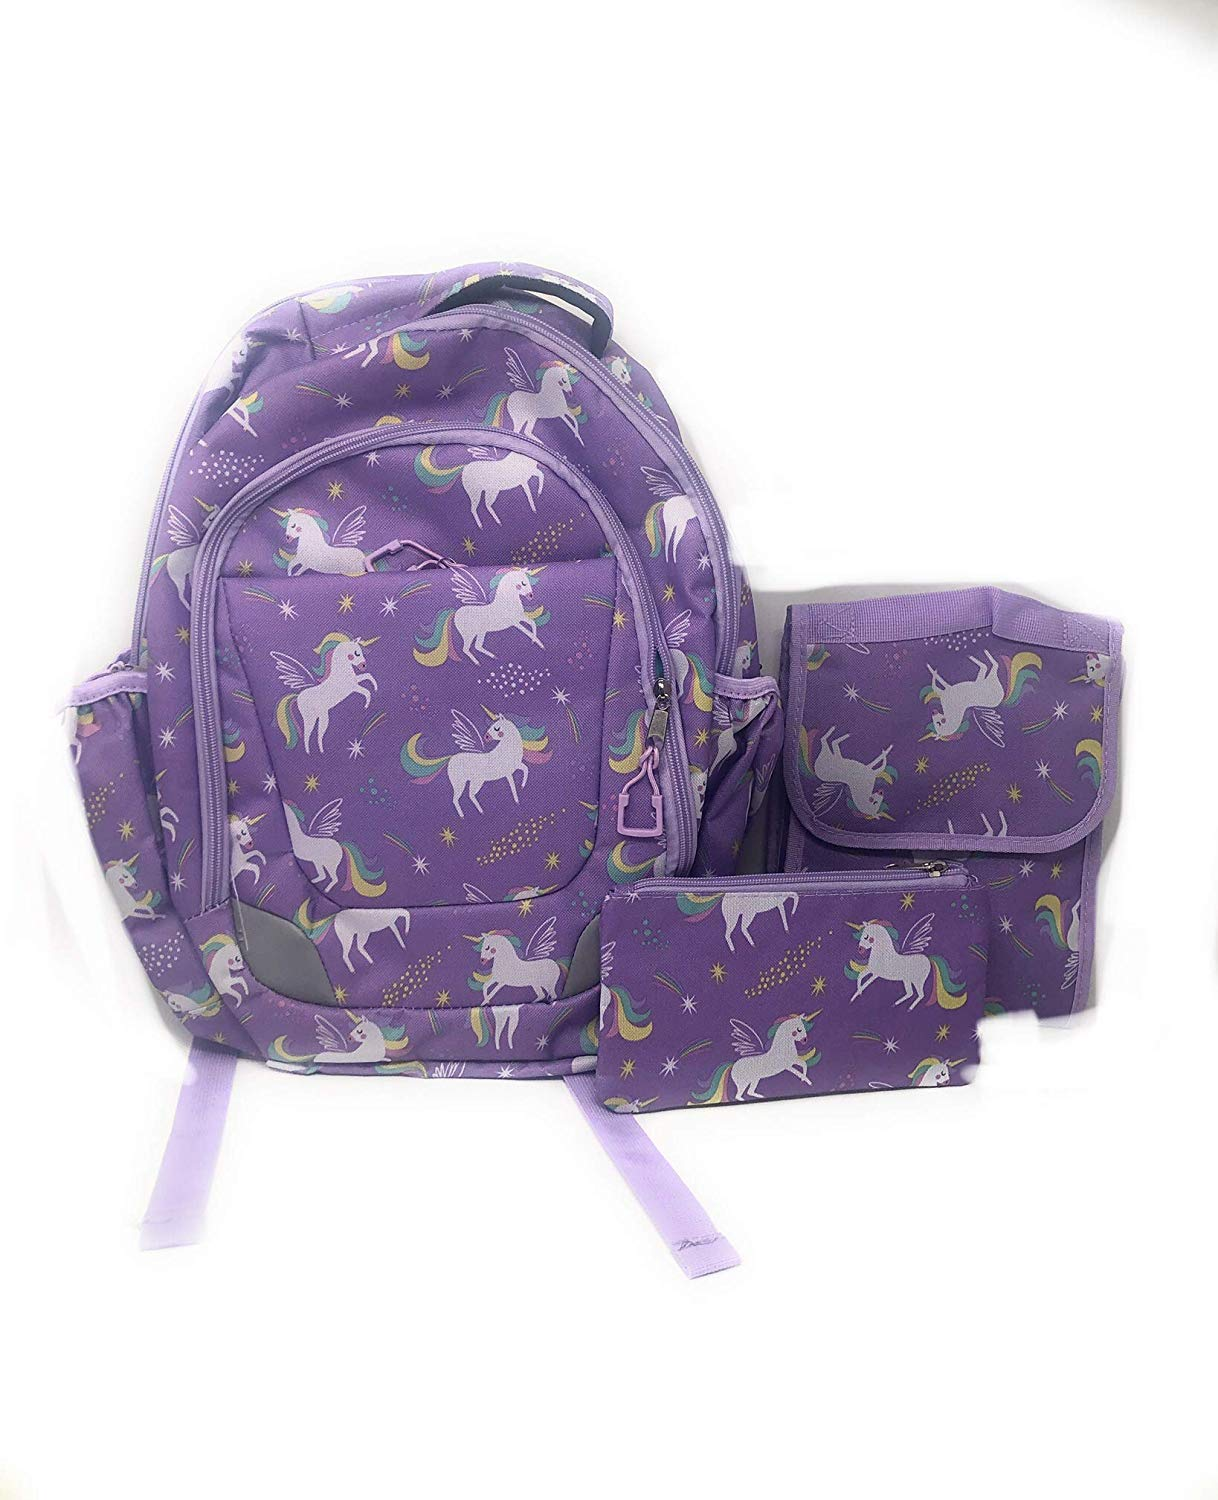 Crckt Youth 3 Piece Backpack Set with Lunch Kit and Matching Pencil Bag in Unicorn